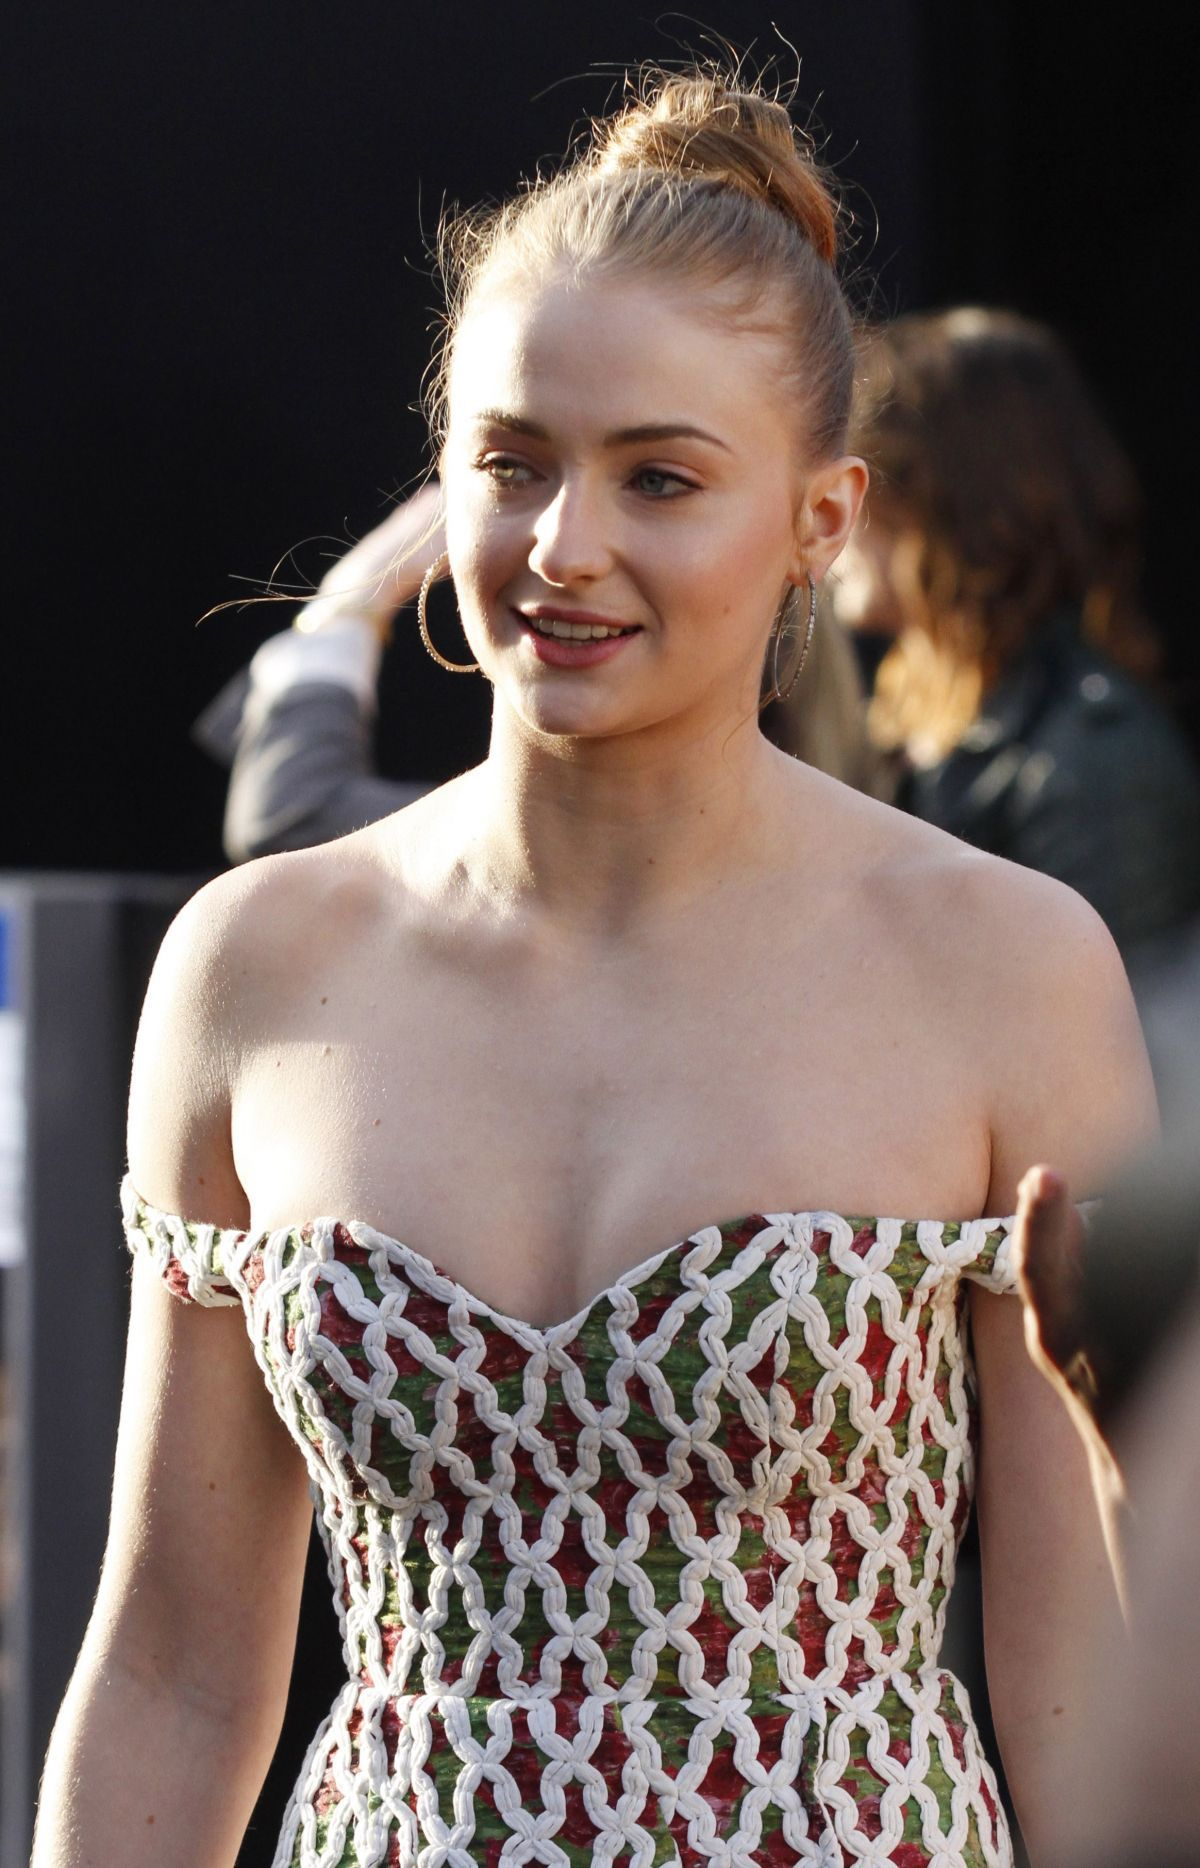 Sophie Turner Stripless